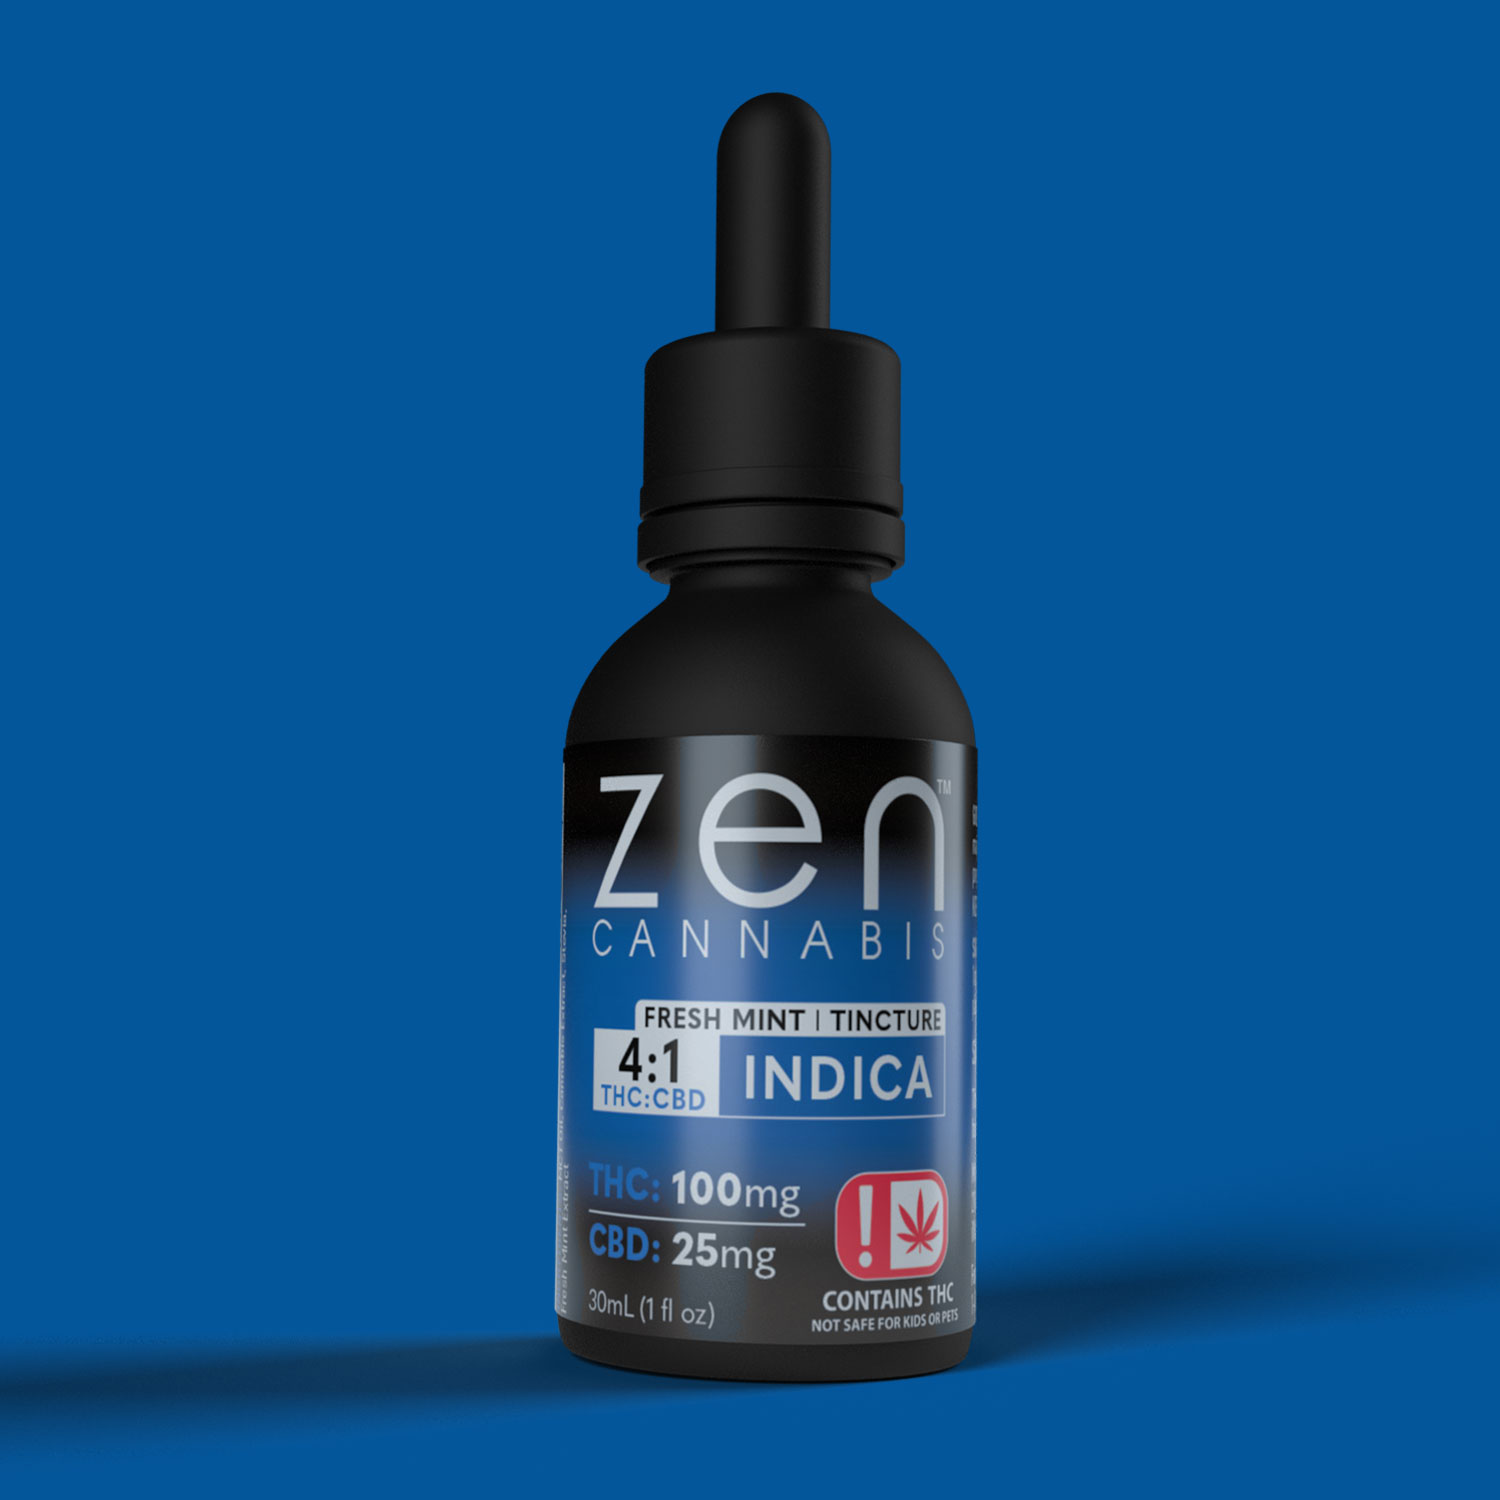 FRESH MINT 100mg THC per bottle 25mg CBD per bottle Bursting with fresh mint flavor, the Zen Cannabis Indica tincture provides amazing relief using the best of both THC, CBD and terpenes to give you a relaxing and refreshing experience that you can control.  100mg THC | 25mg CBD 1oz (30ml)